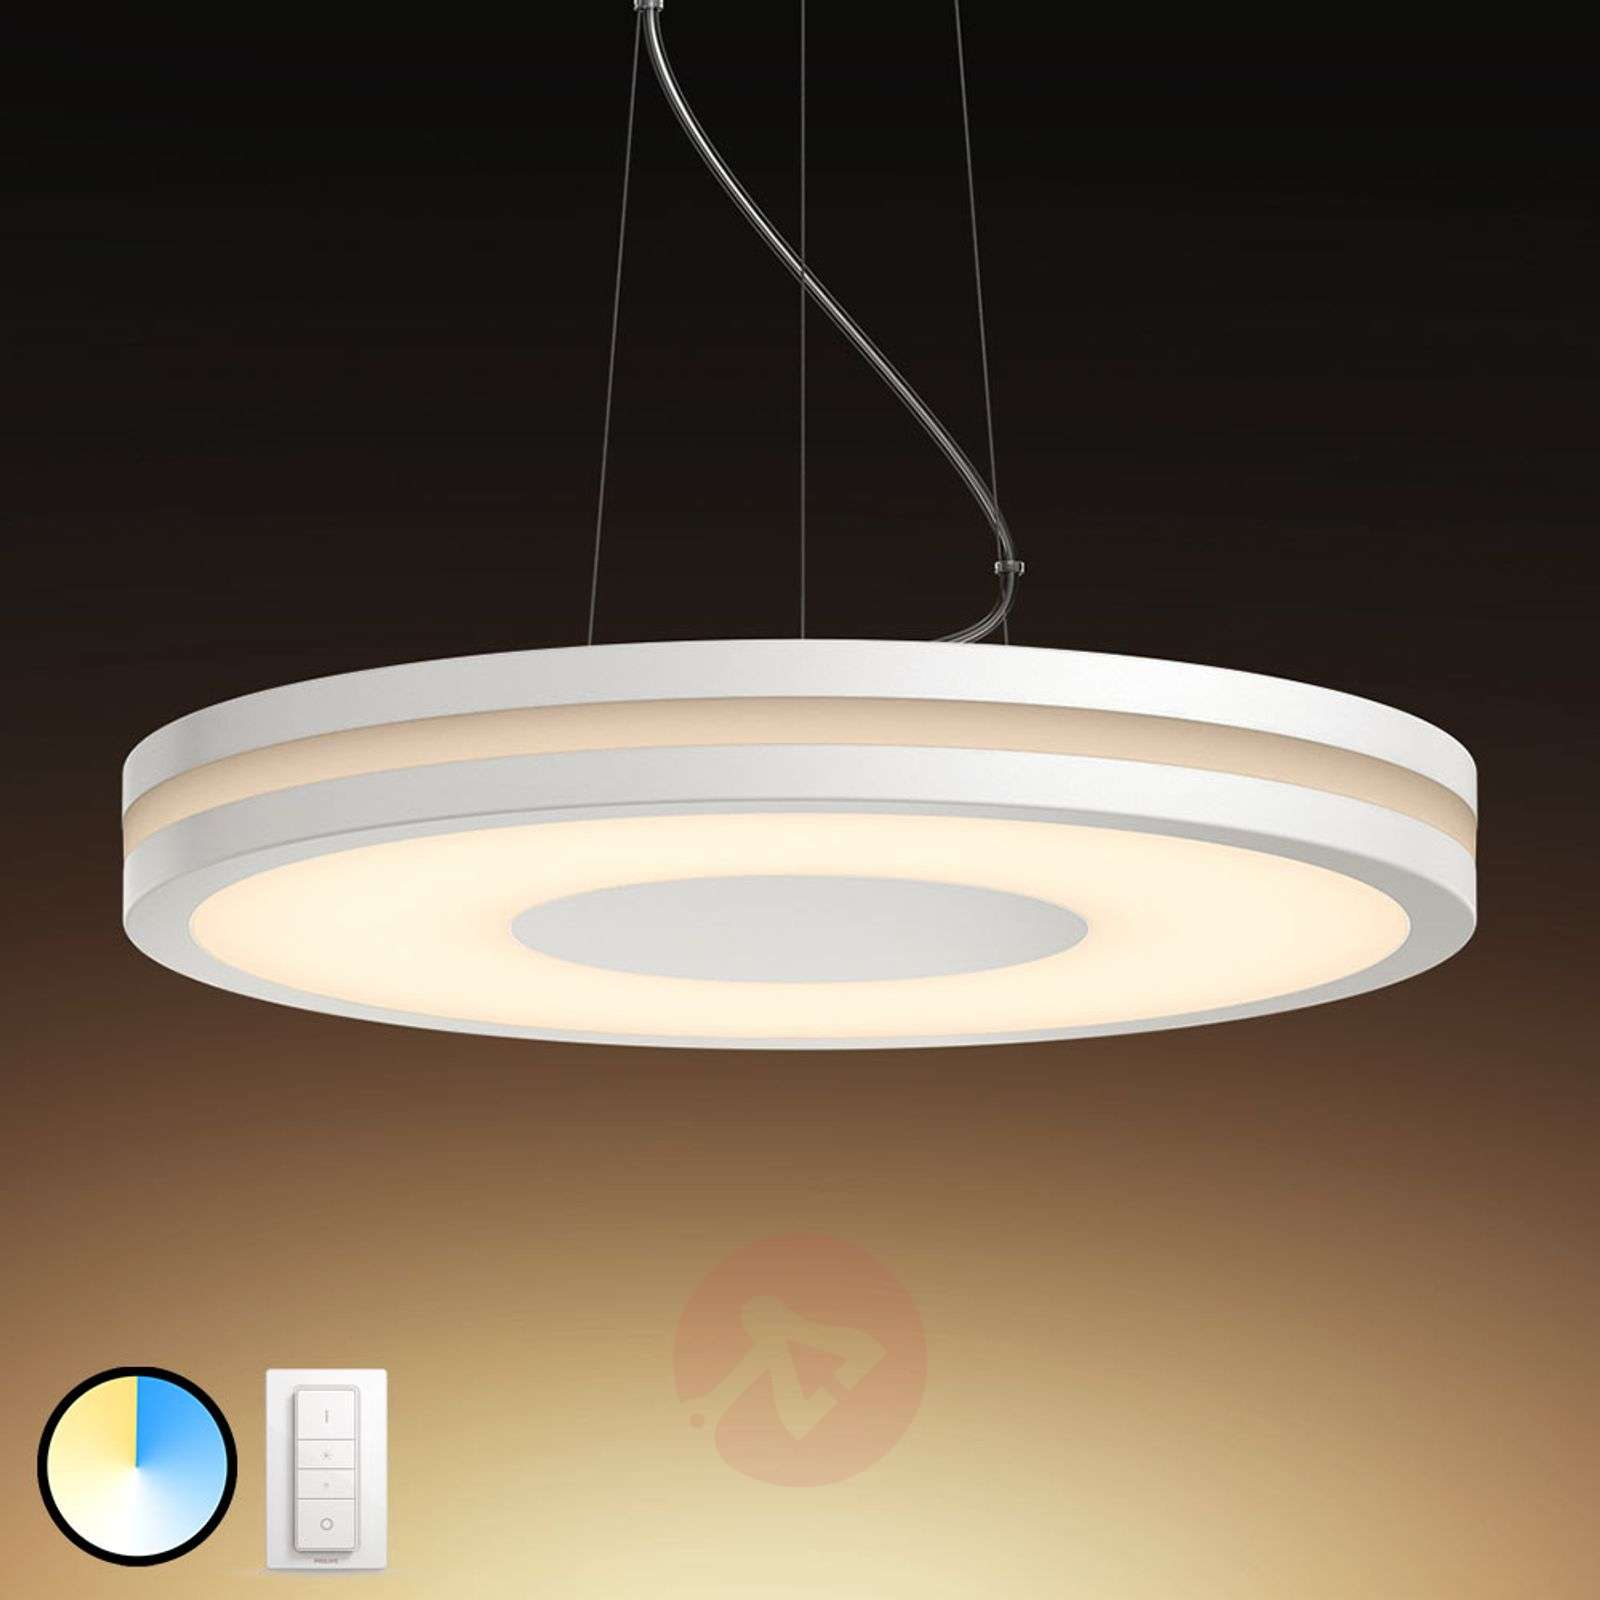 Philips Hue Being Led Hanging Light Dimmer Switch Lights Ie